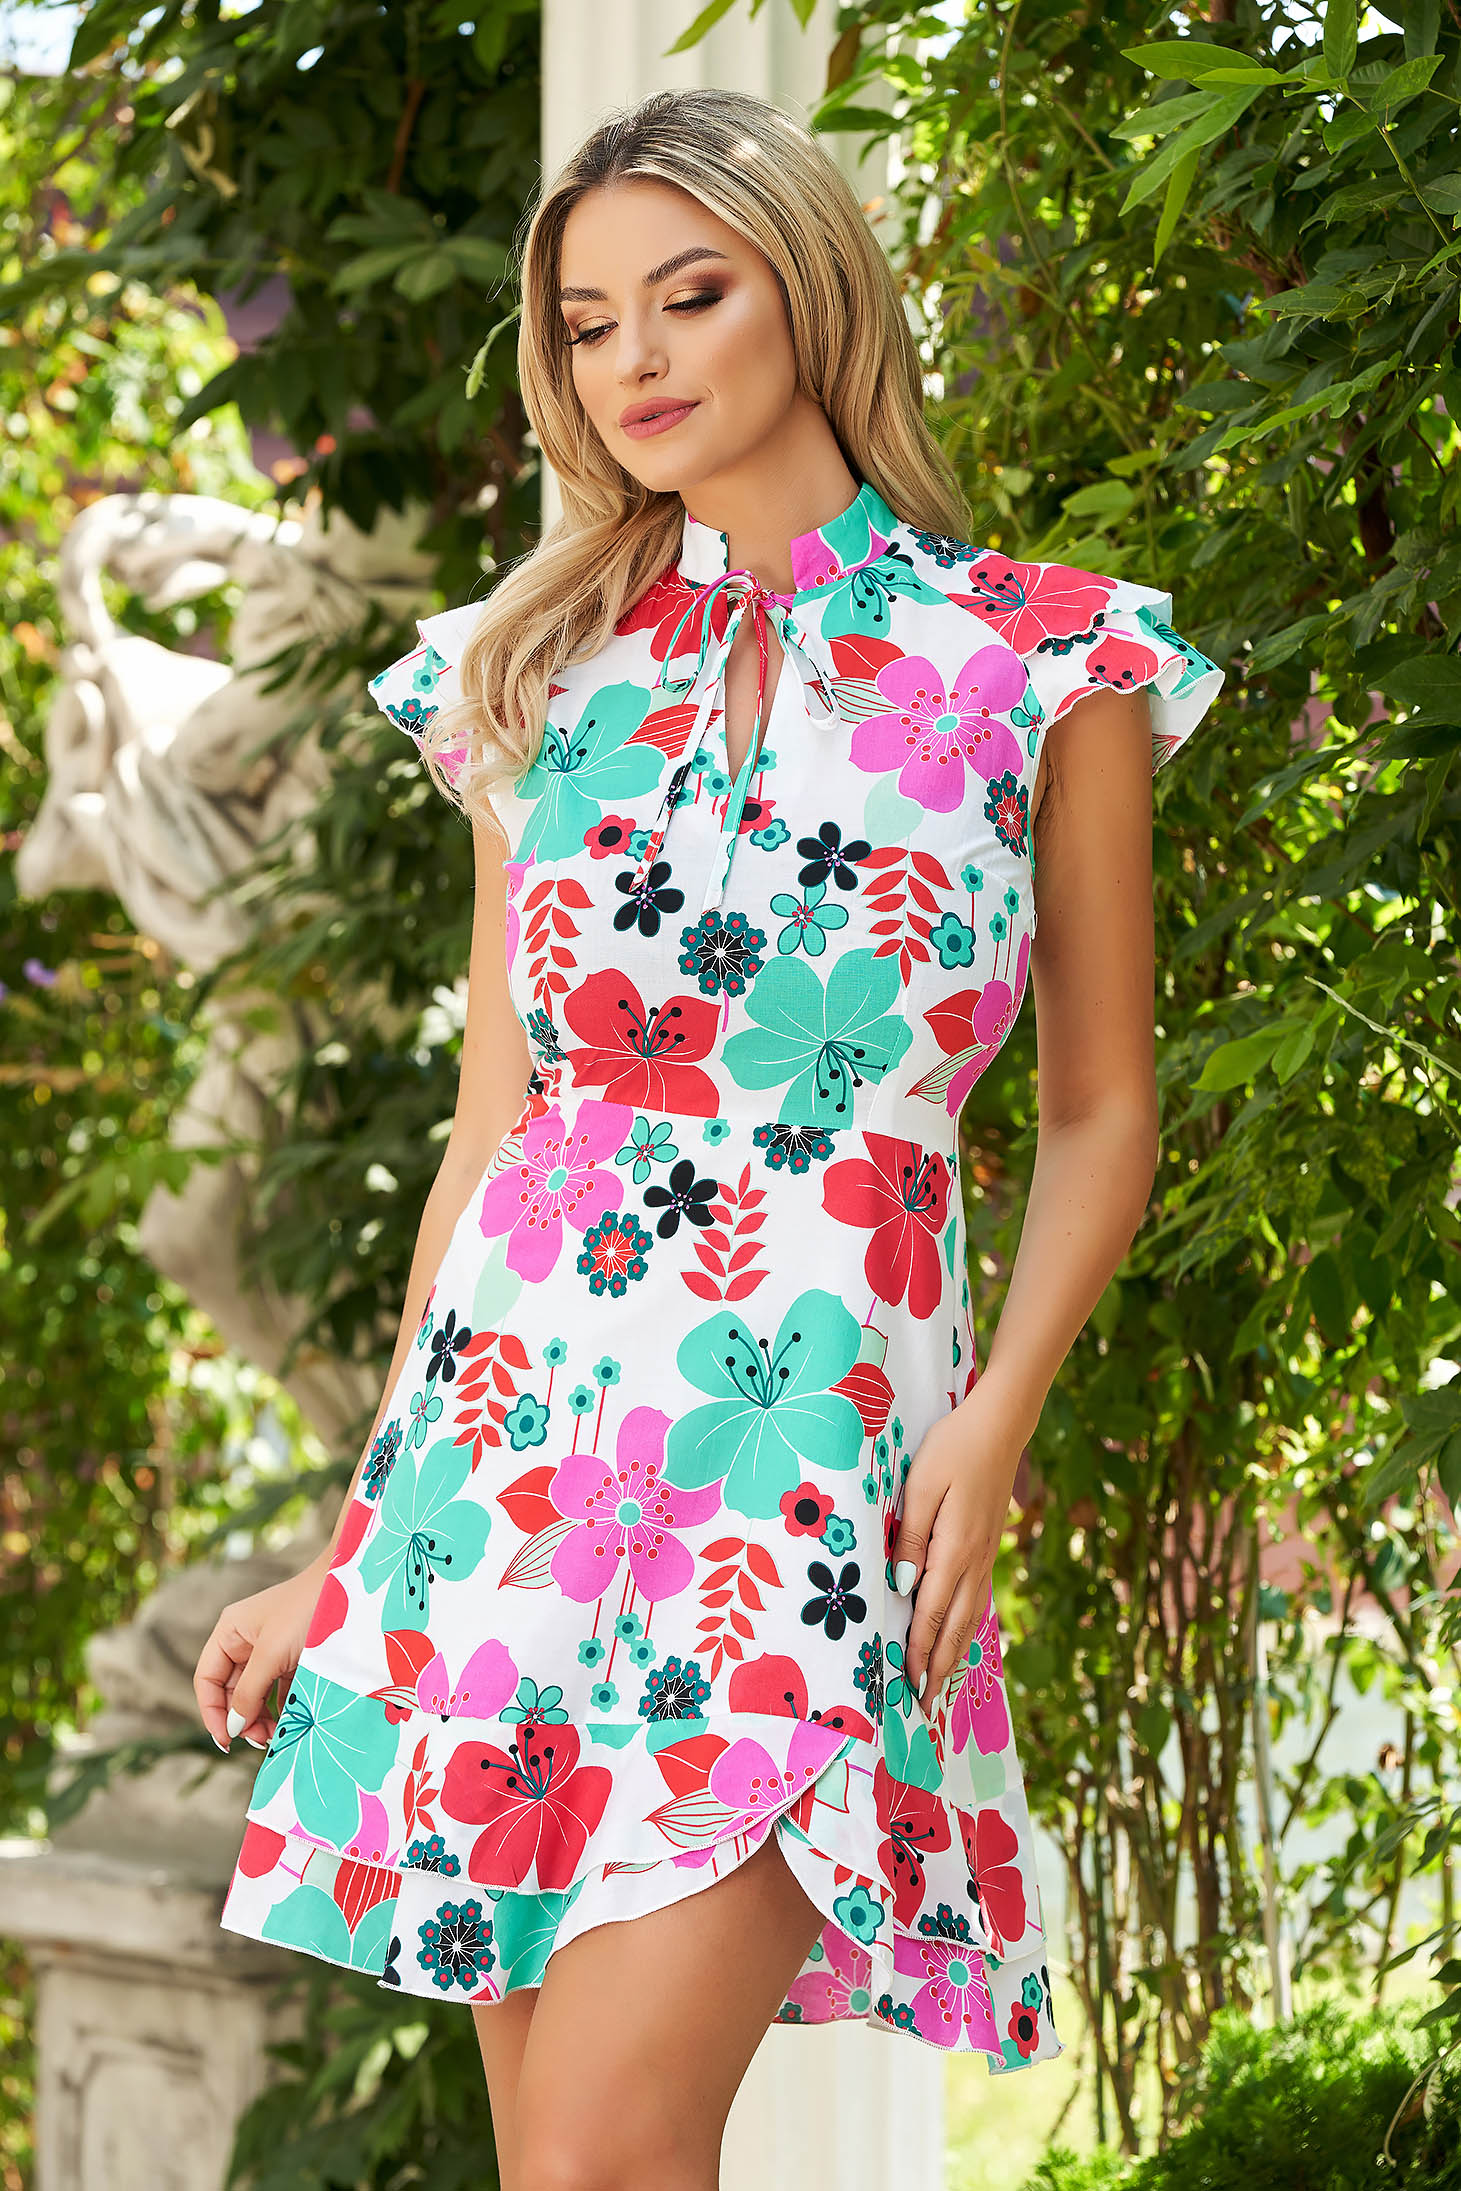 White dress short cut cloche thin fabric with floral print daily